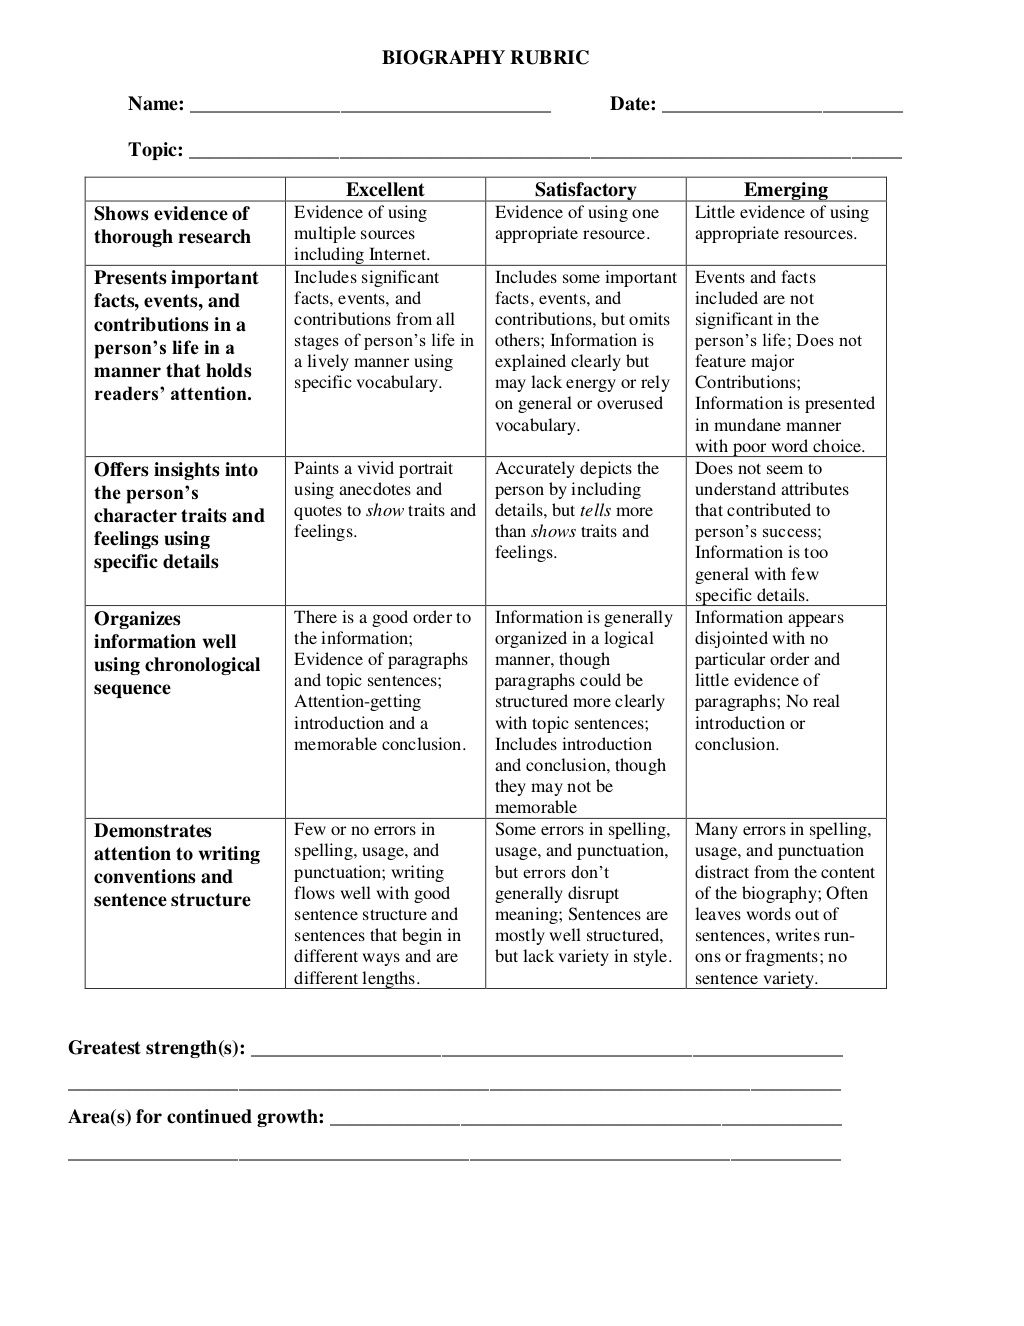 022 Sample Biography Essay Unforgettable About Myself Elementary Self Full